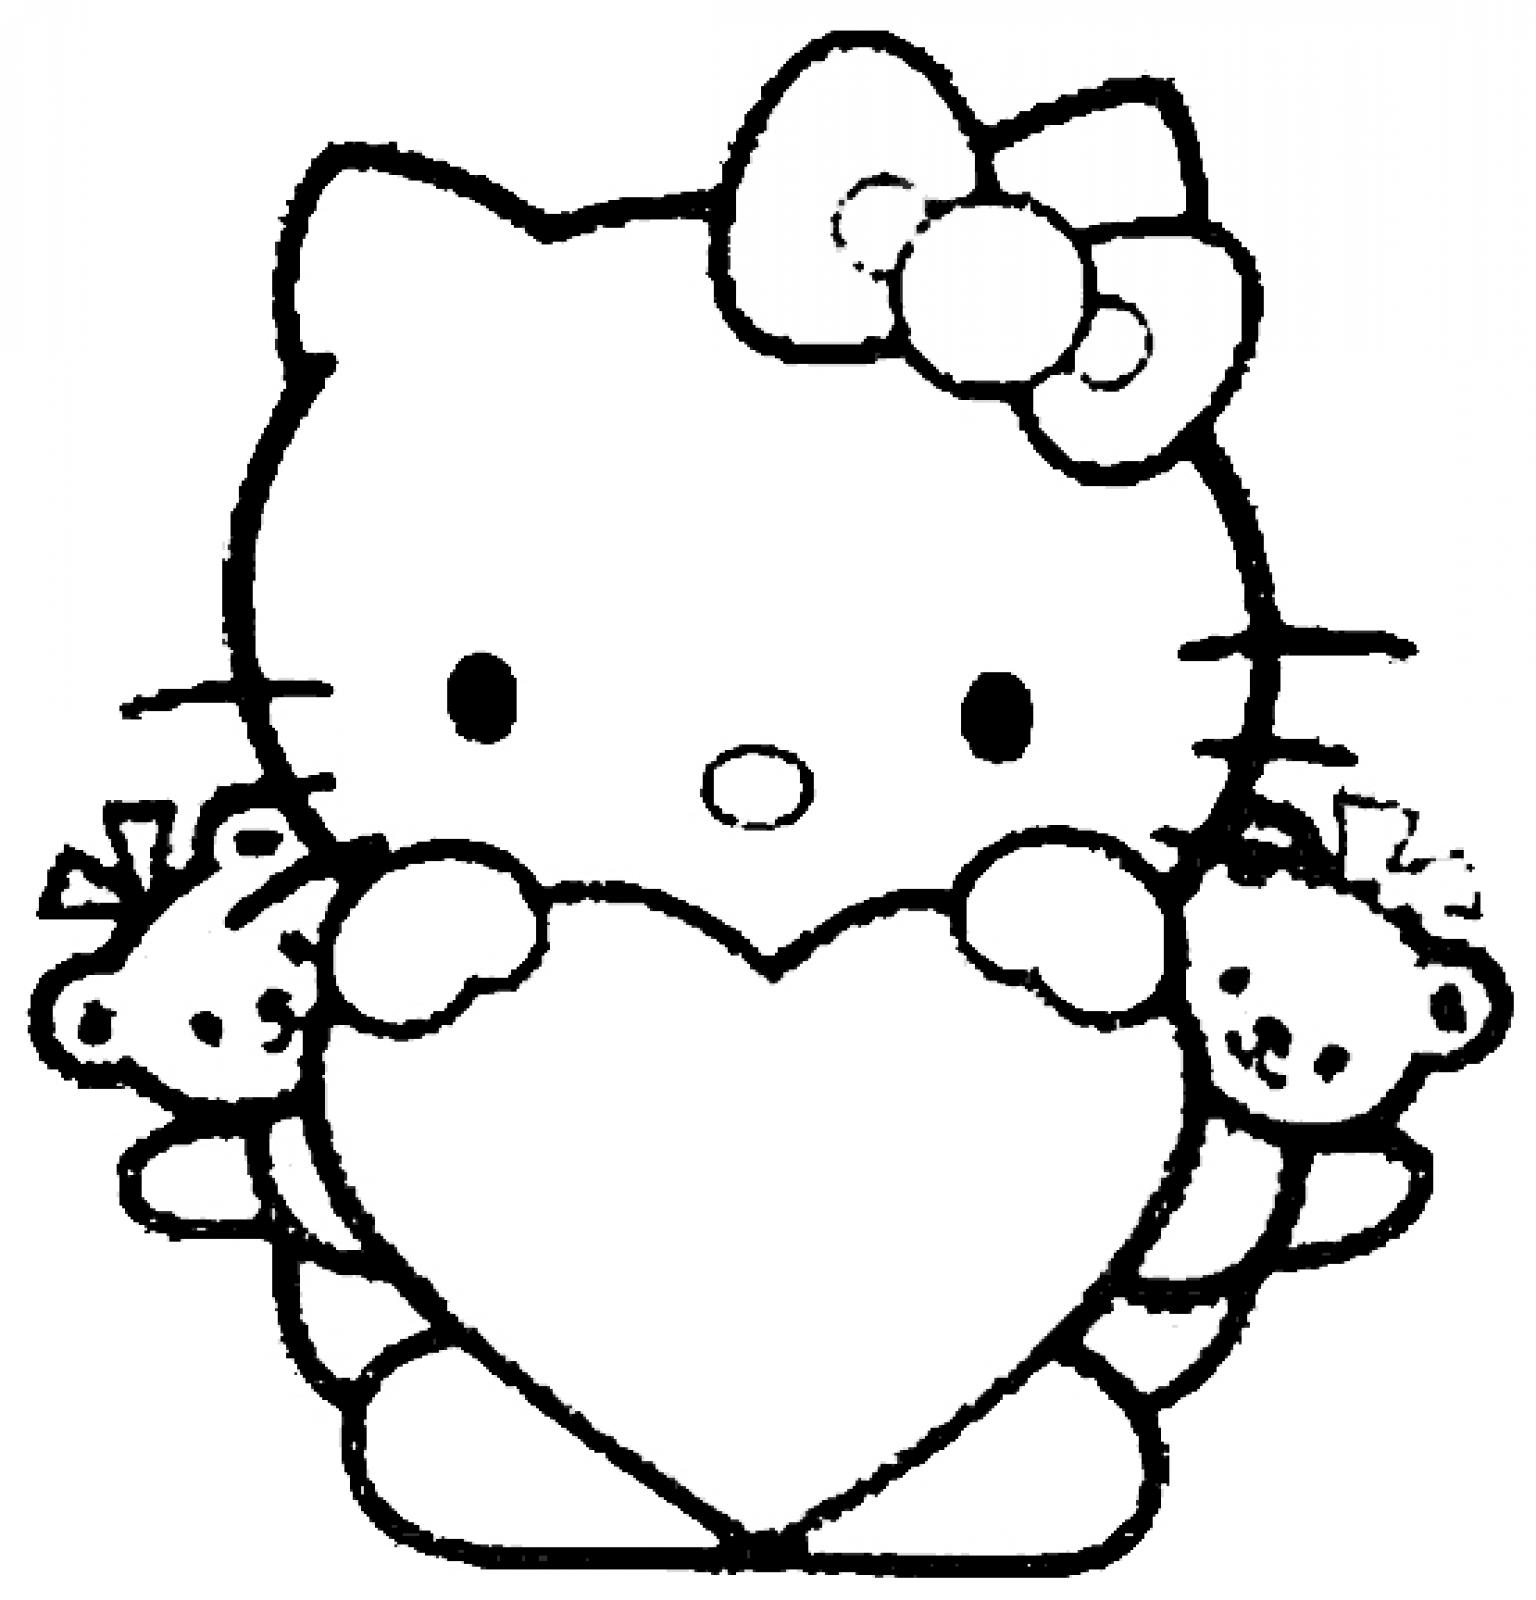 Coloring Pages for Kids to Print Out Hello Kitty Hello Kitty Heart Collection Of Proven Coloring Pages to Print Hello Kitty 2895 Unknown Printable